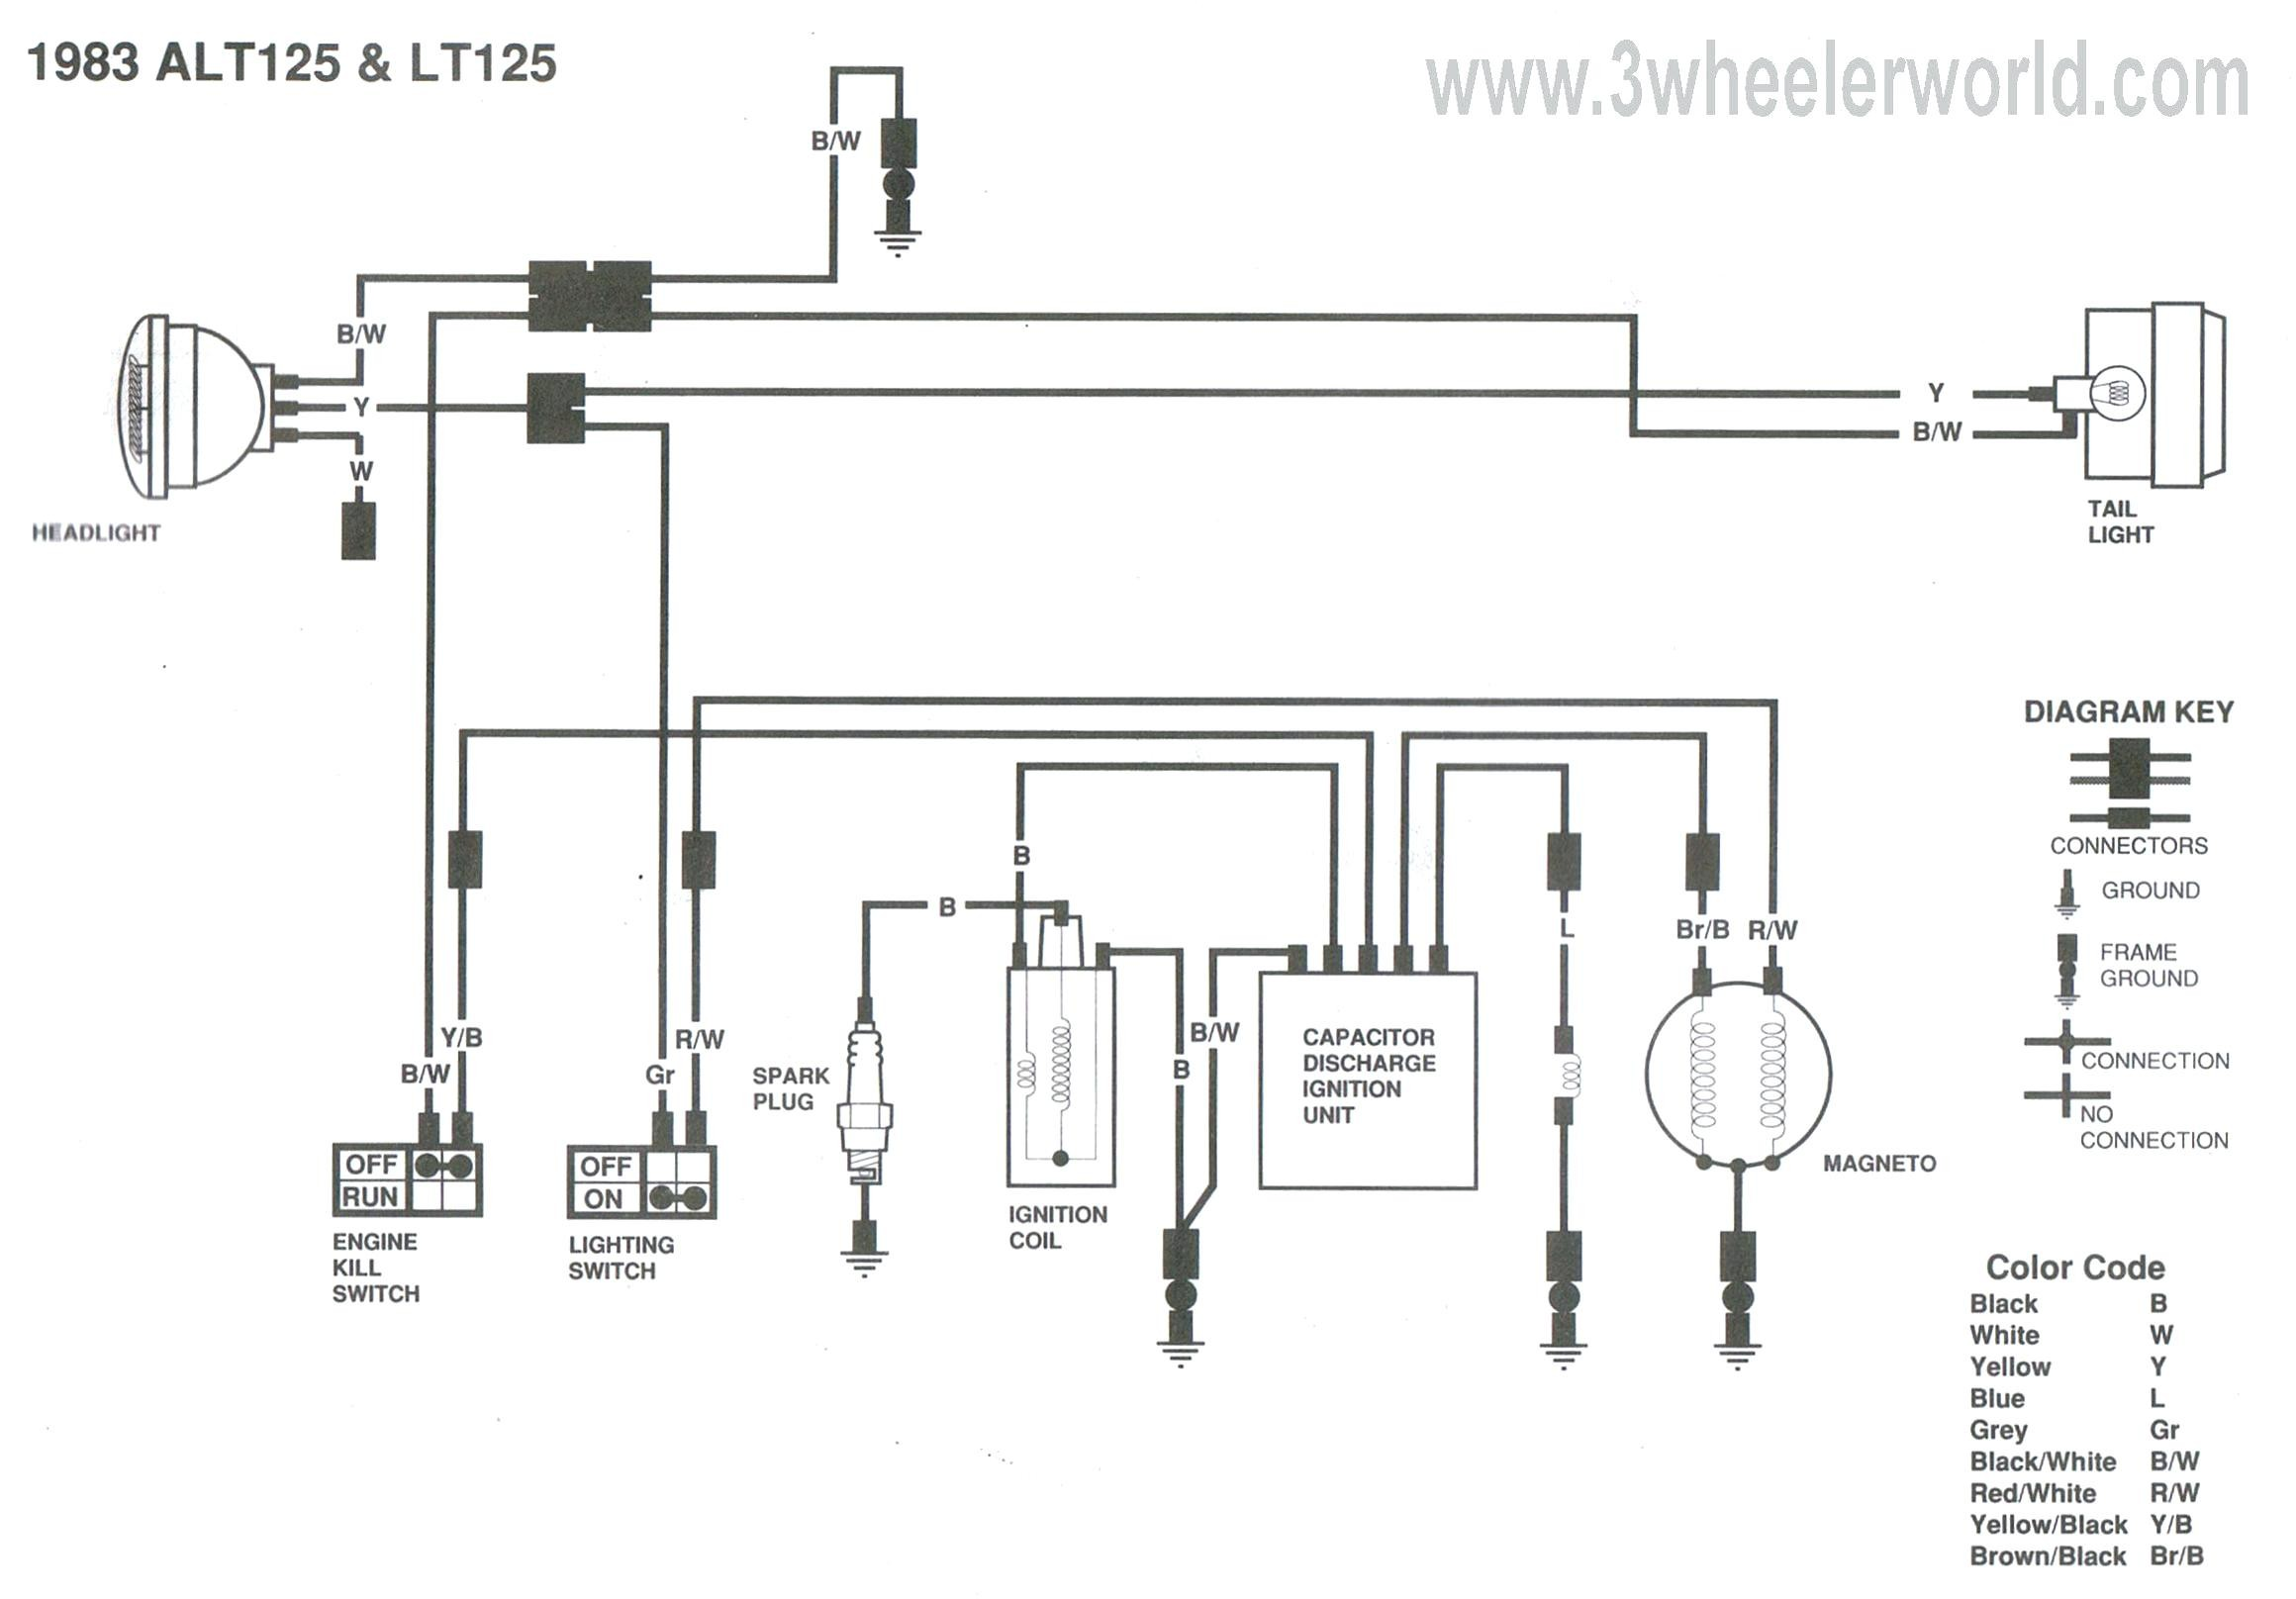 Wiring Diagram Aprilia Rx 50 Trusted Diagrams For Yamaha Rsv Mille Electrical Rs 2000